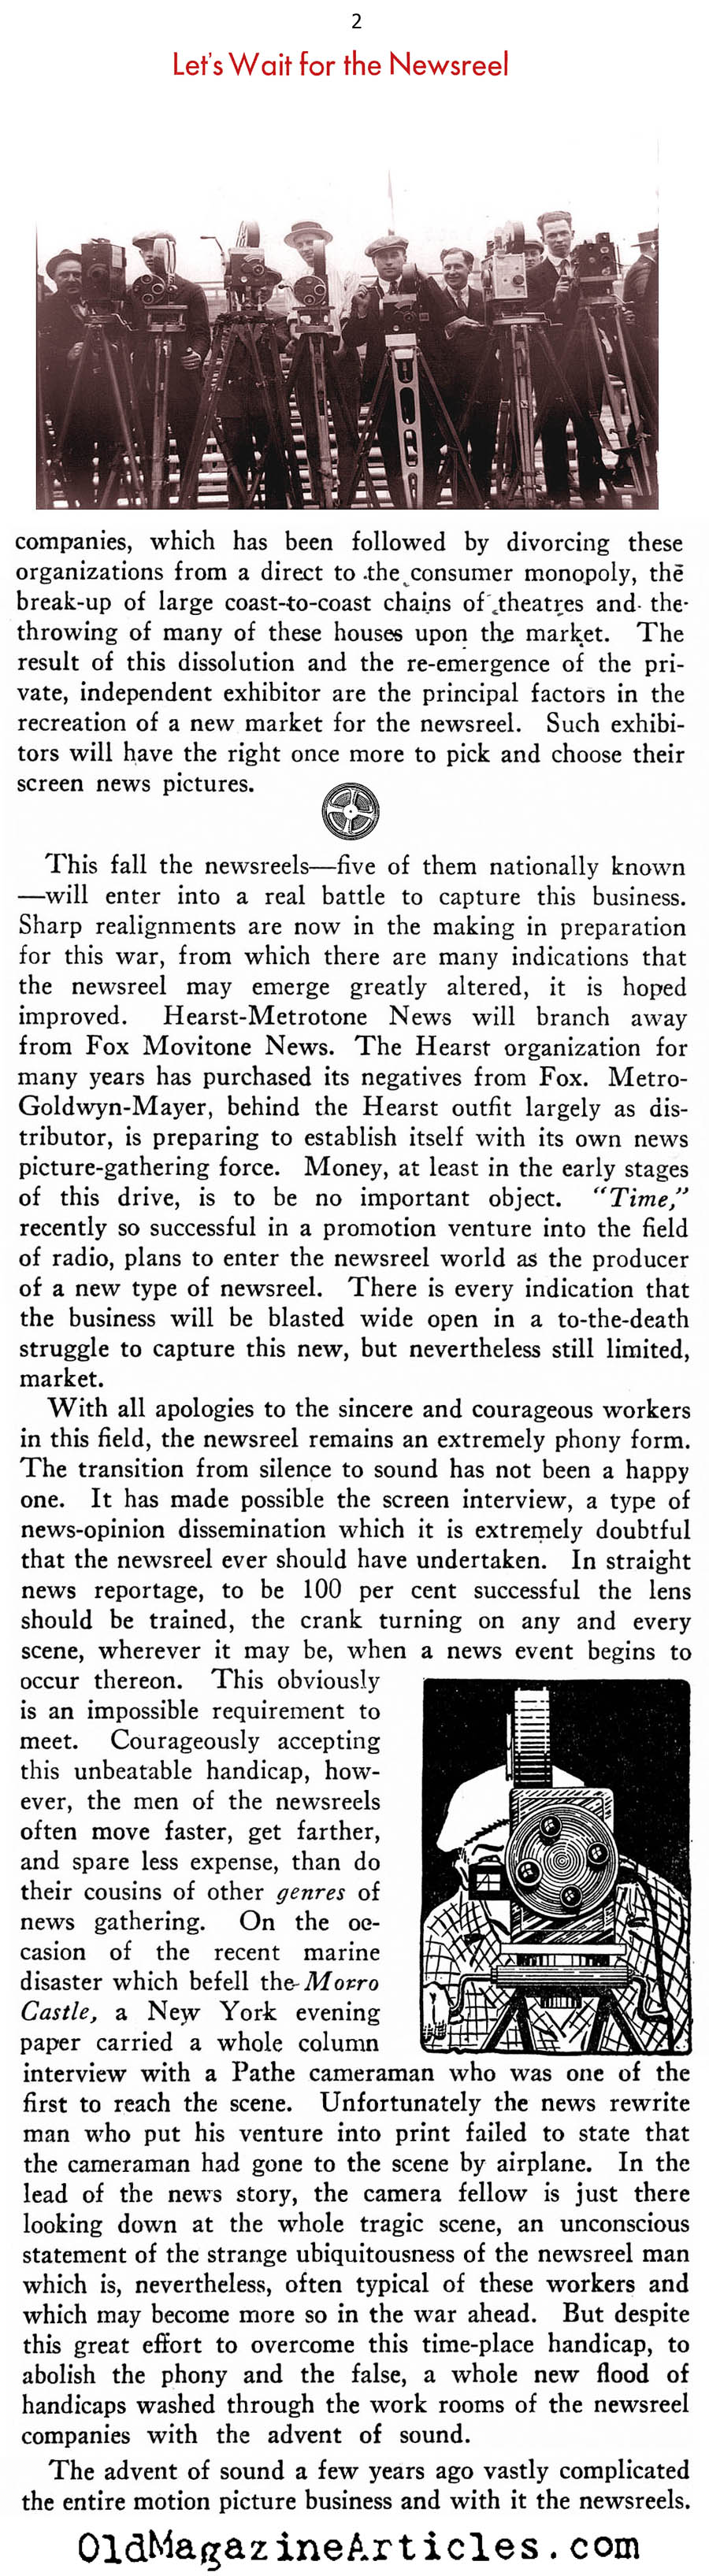 Fake News? (New Outlook Magazine, 1934)